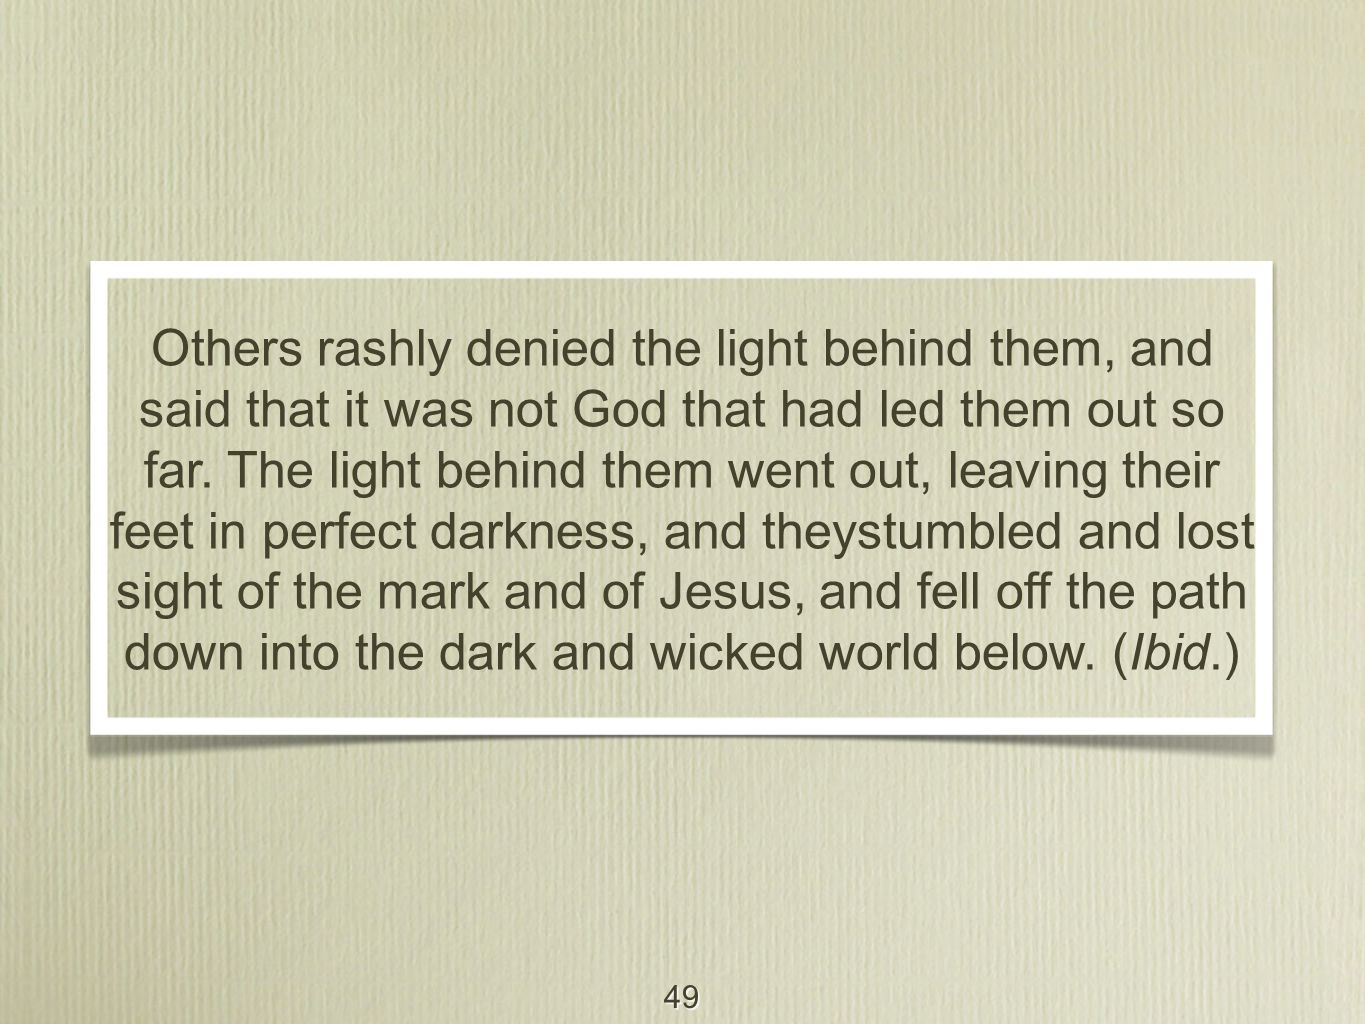 49 Others rashly denied the light behind them, and said that it was not God that had led them out so far.